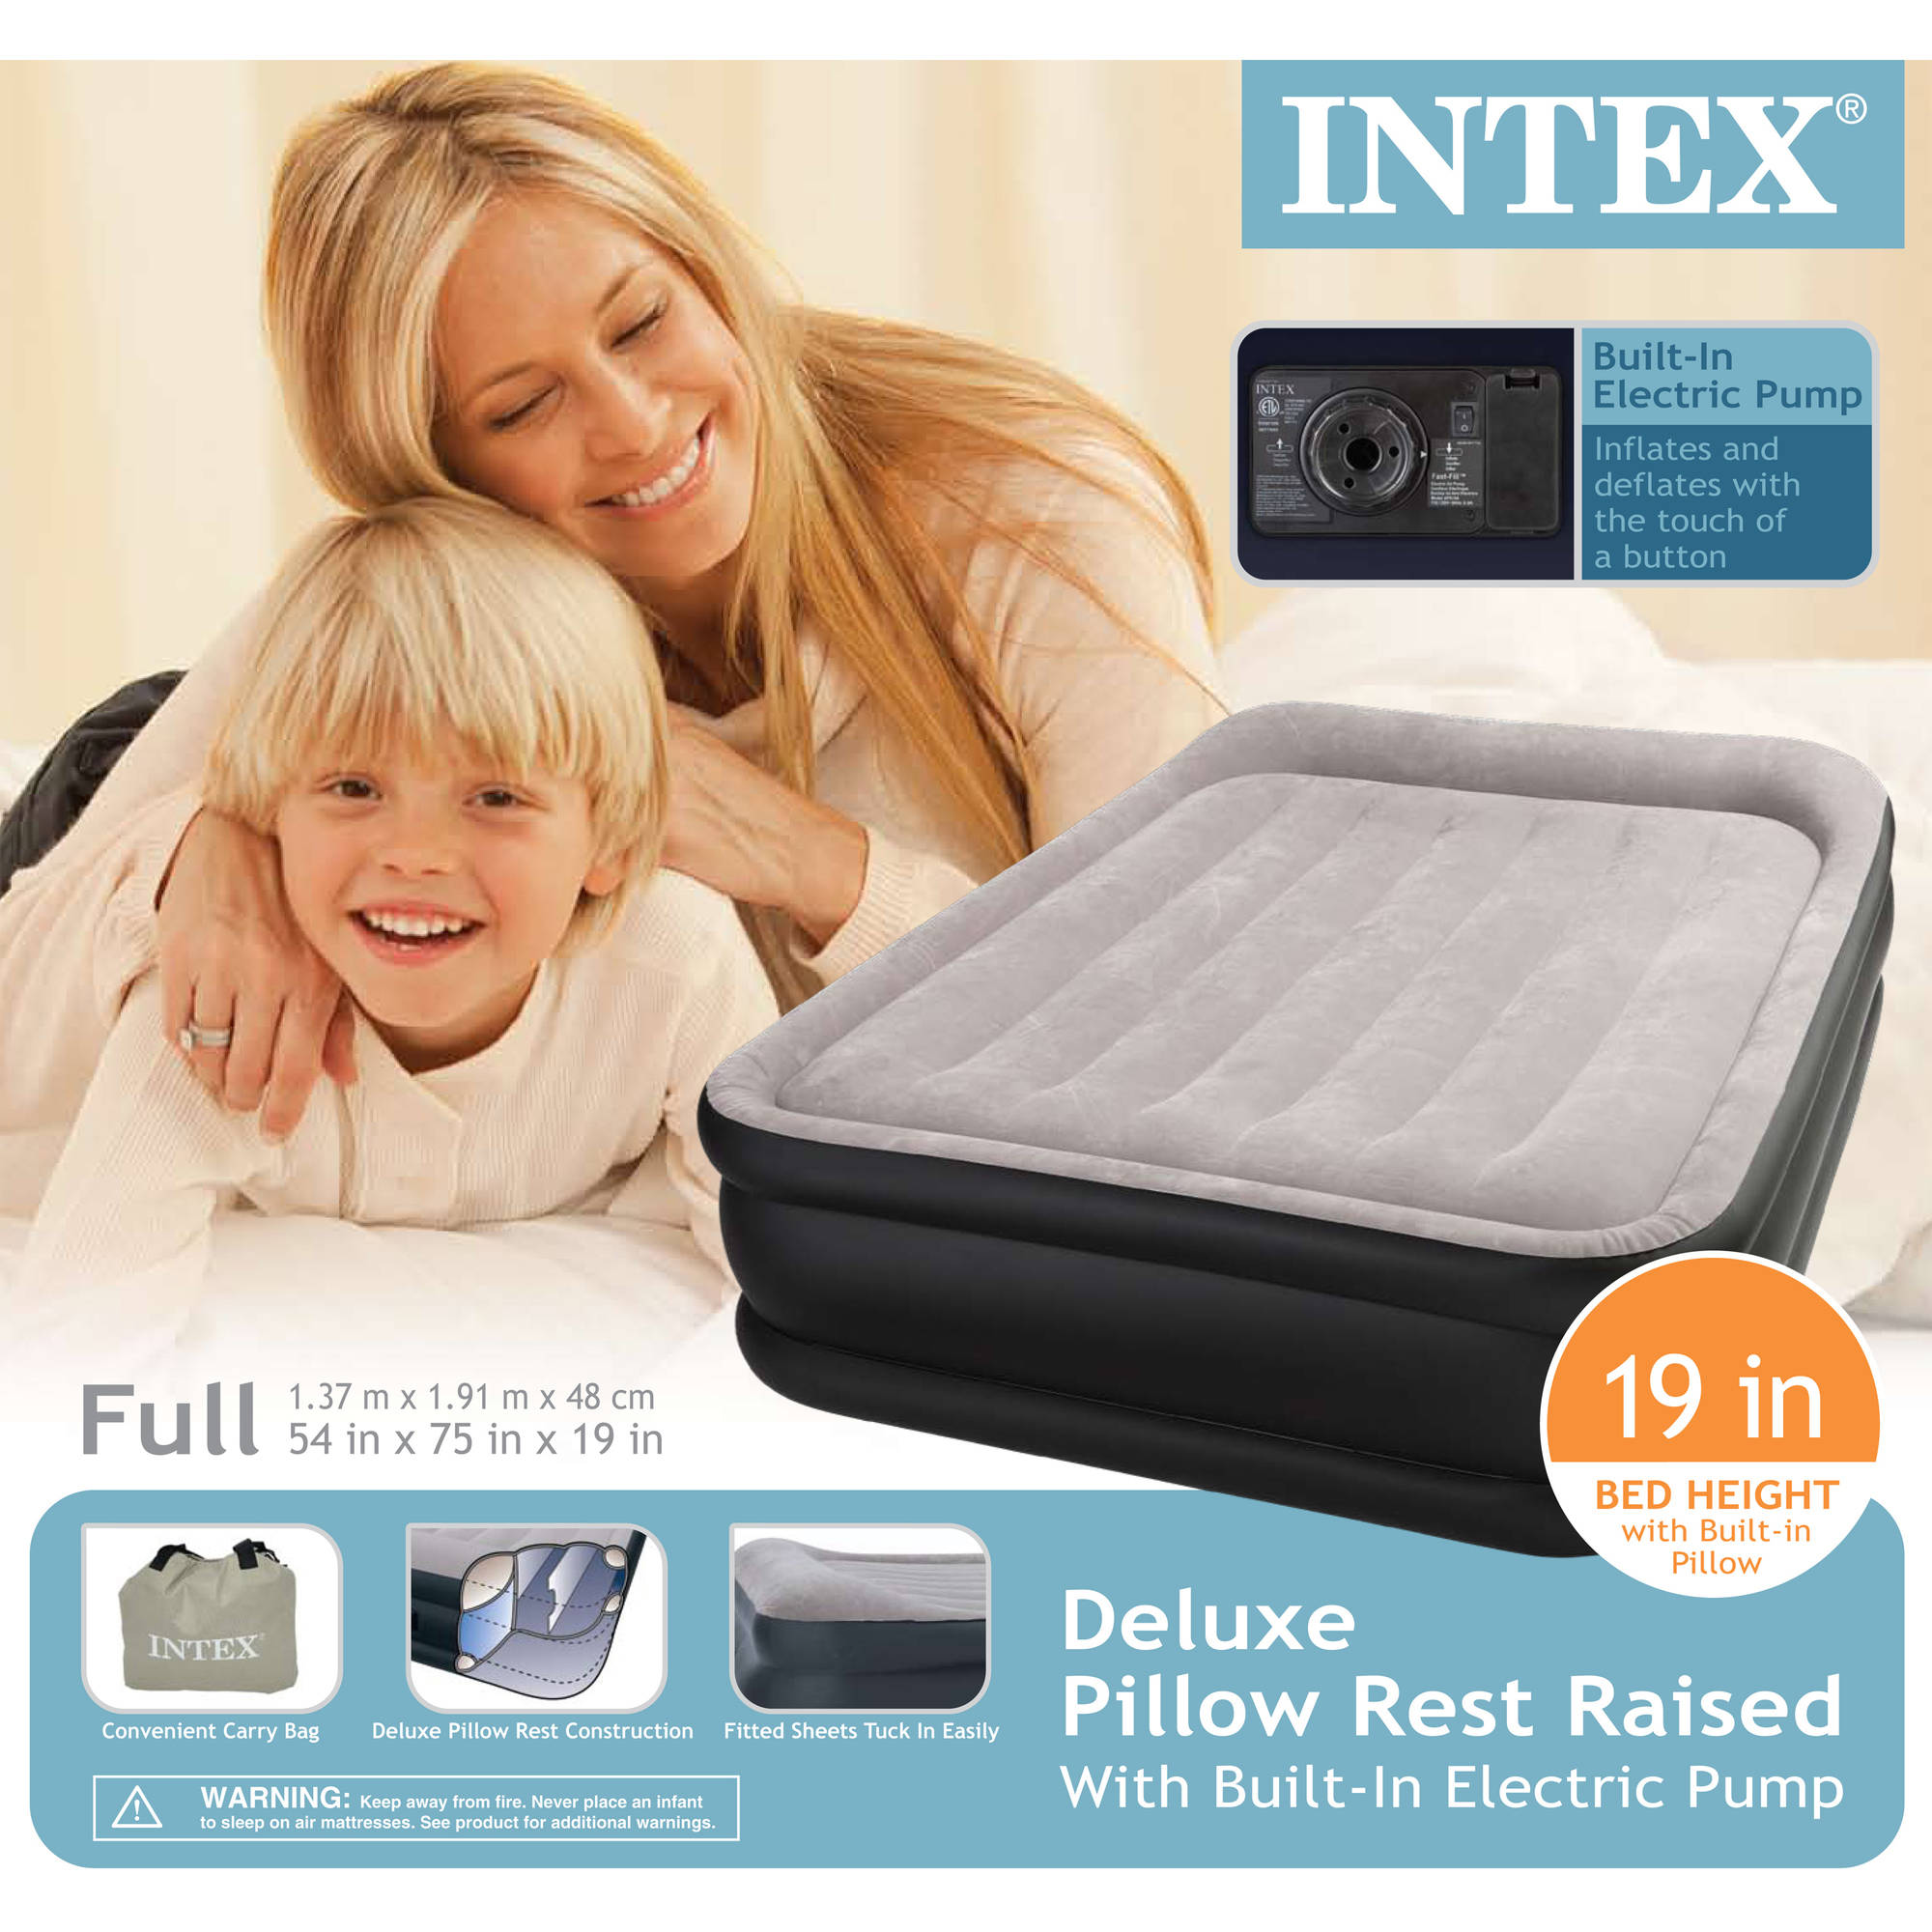 intex deluxe raised pillow rest airbed mattress with built in pump 1 each